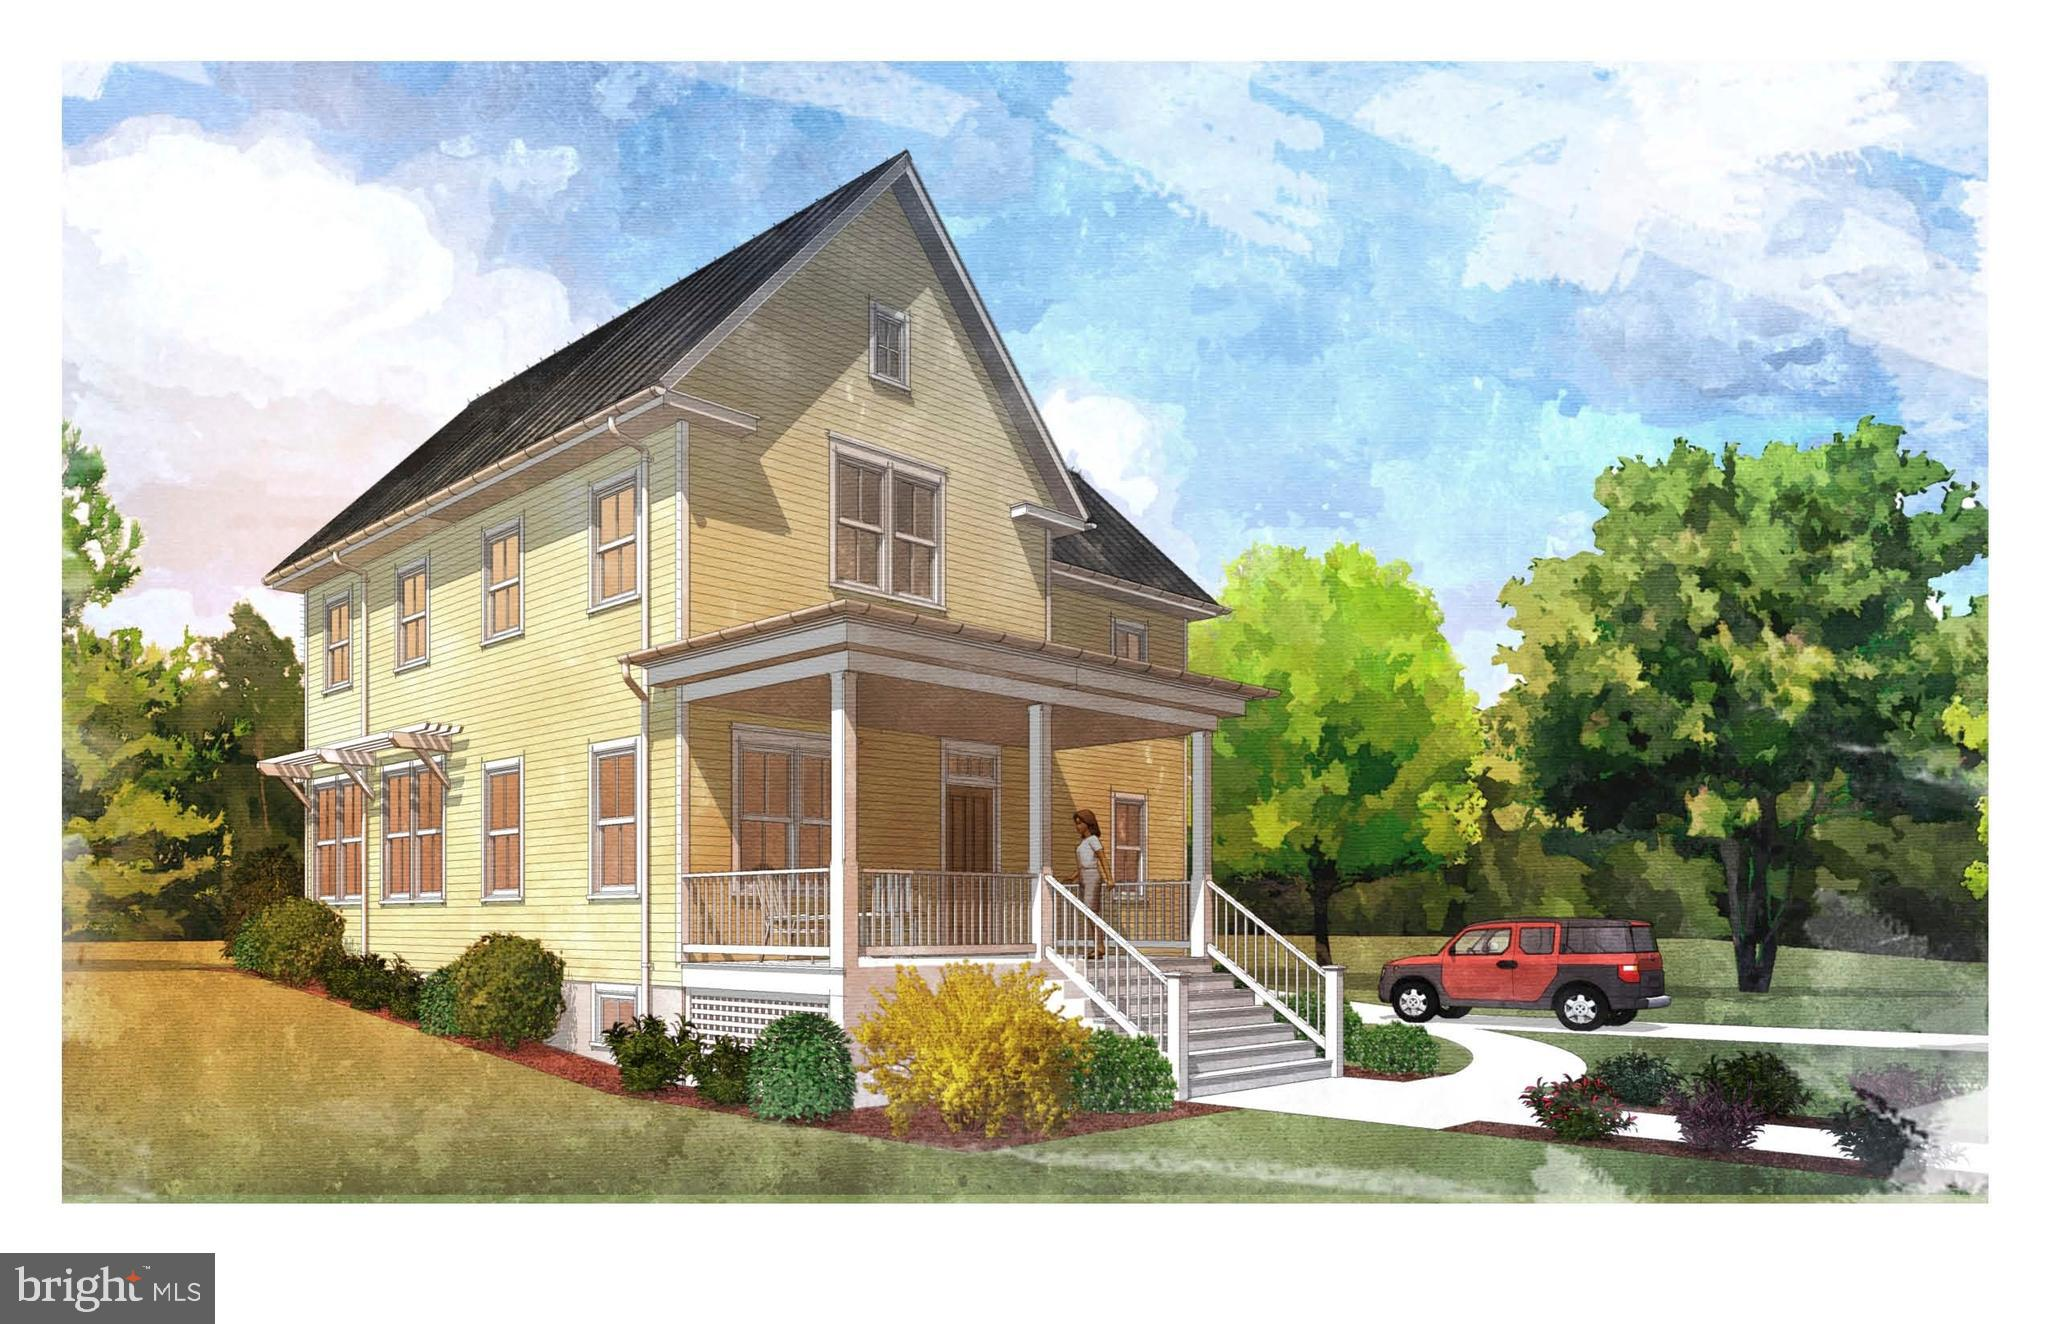 Chalk Farm is a hamlet located in Western Loudoun with custom designed farmhouse. Lot 6 is one of 2